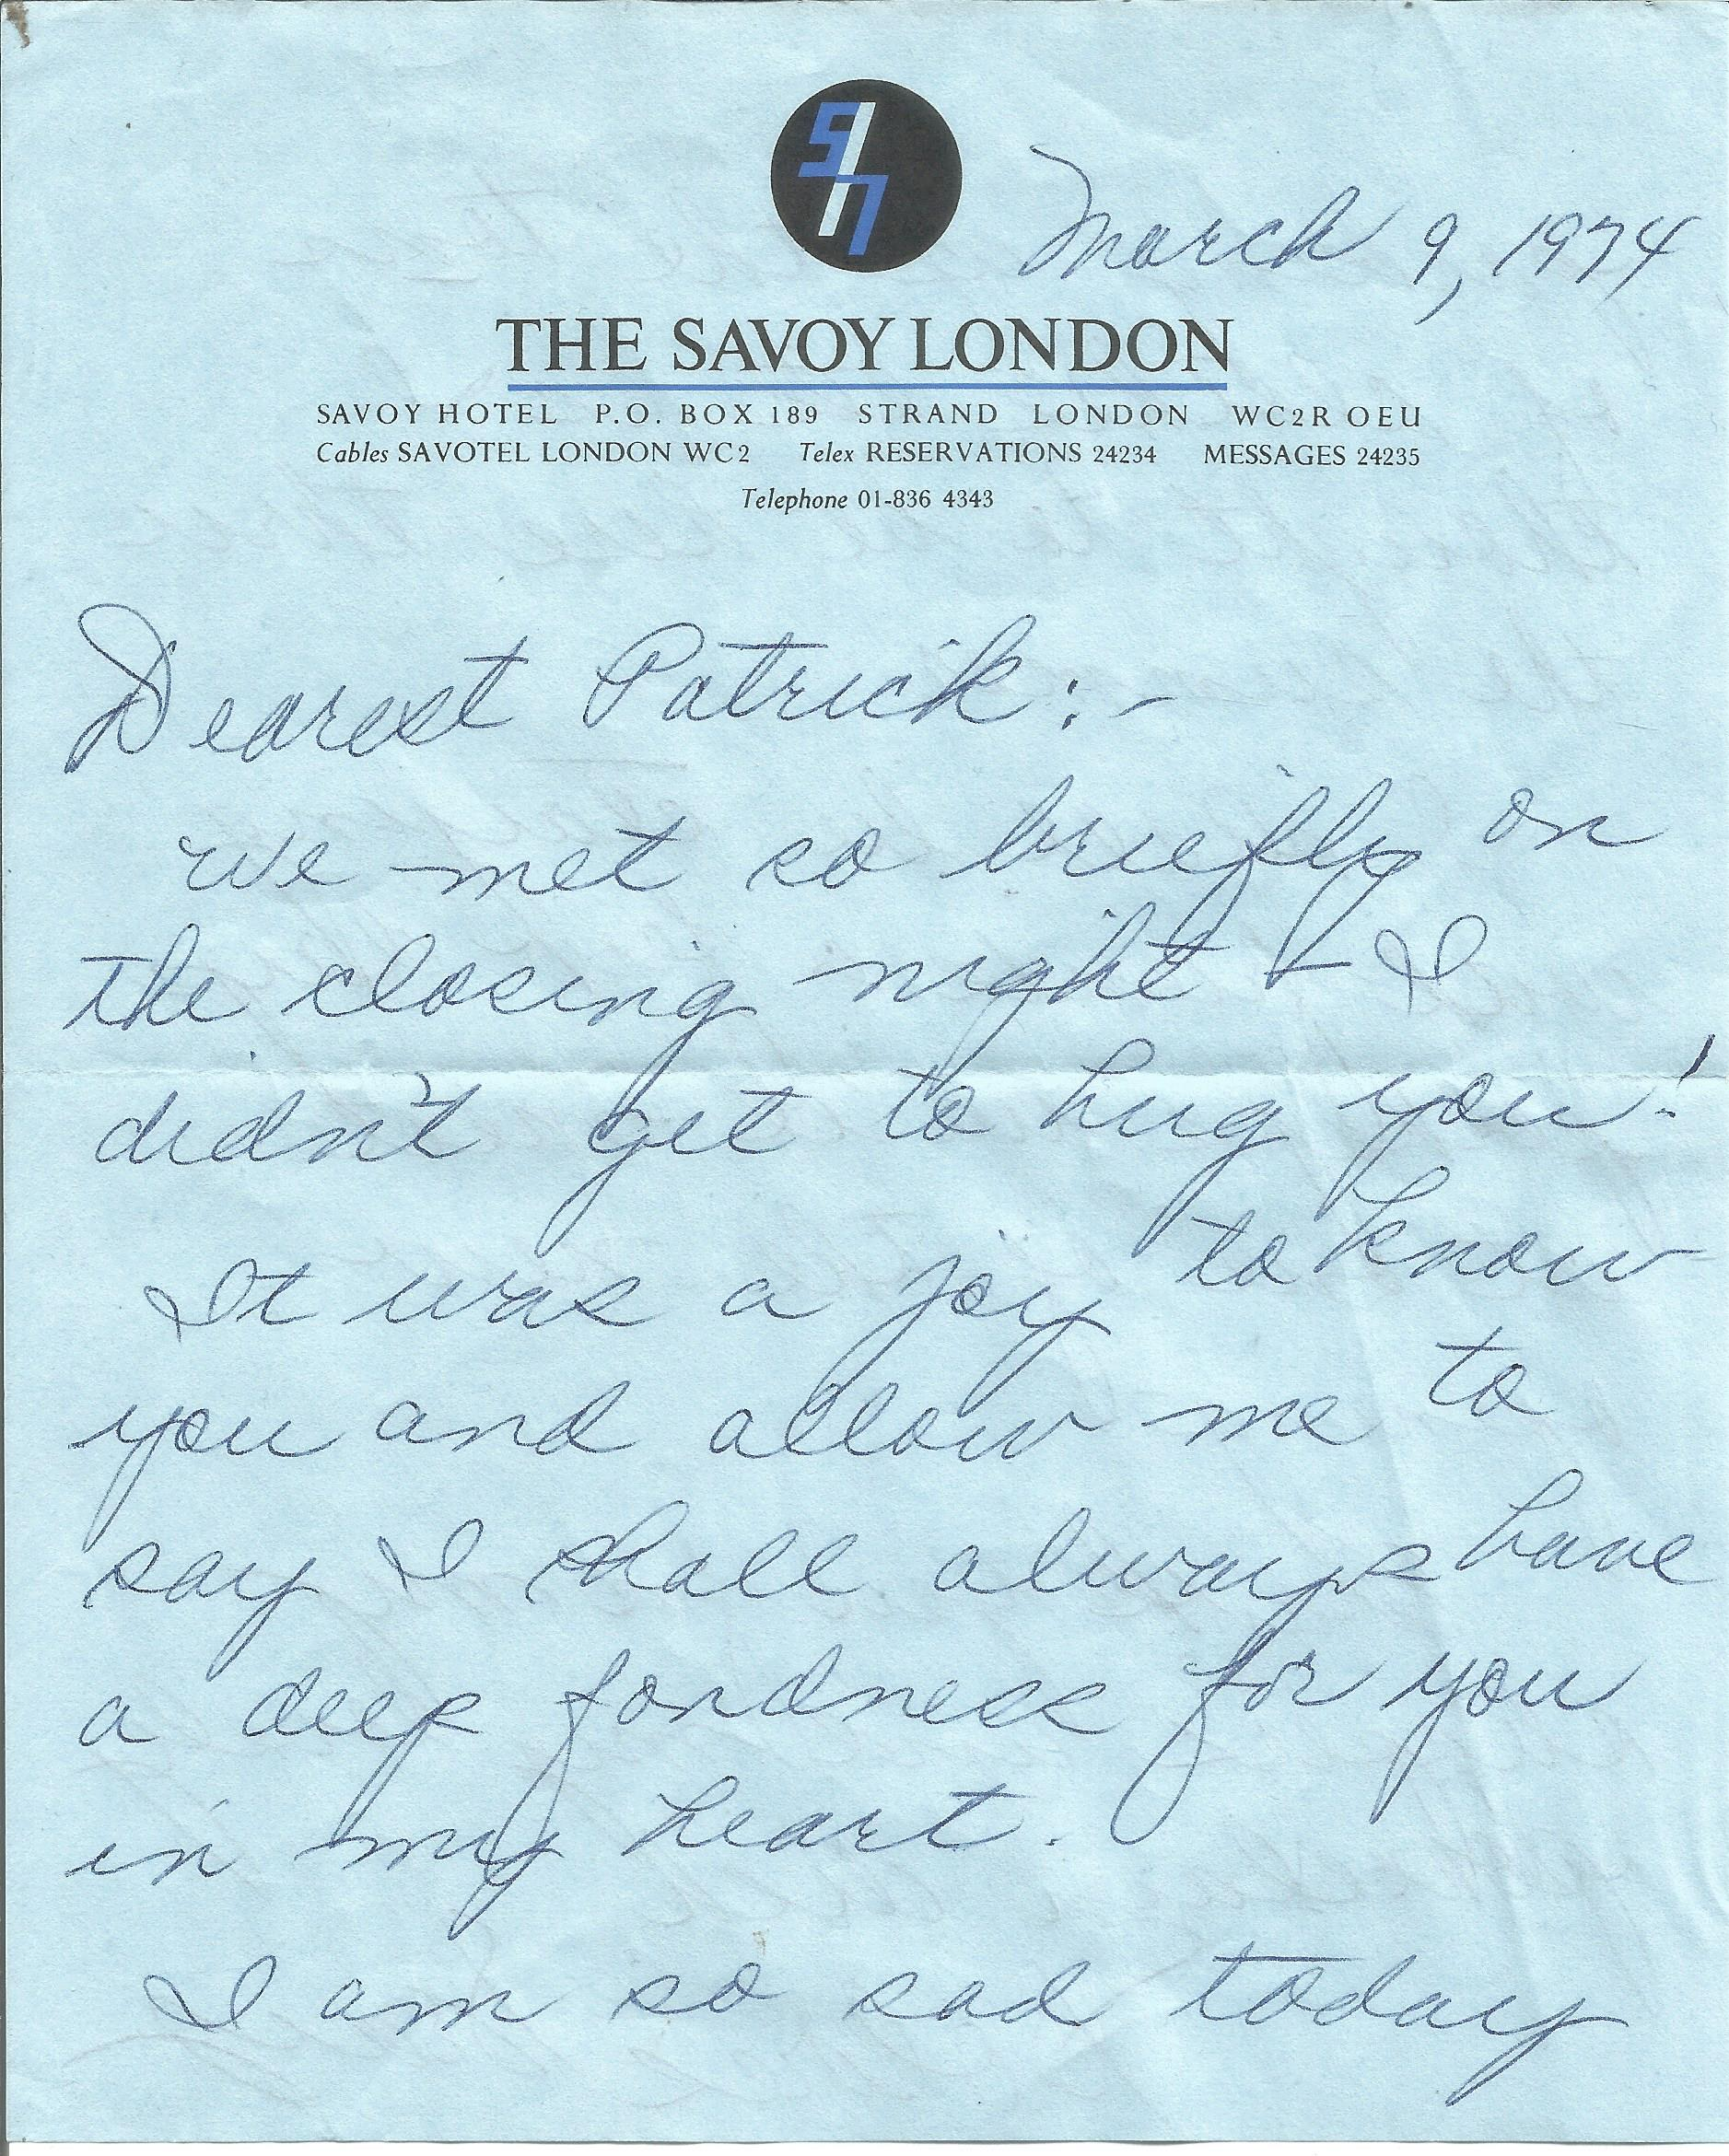 Dolores Gray ALS dated 9th March 1974. This hand written letter is on headed paper from Savoy - Image 2 of 3